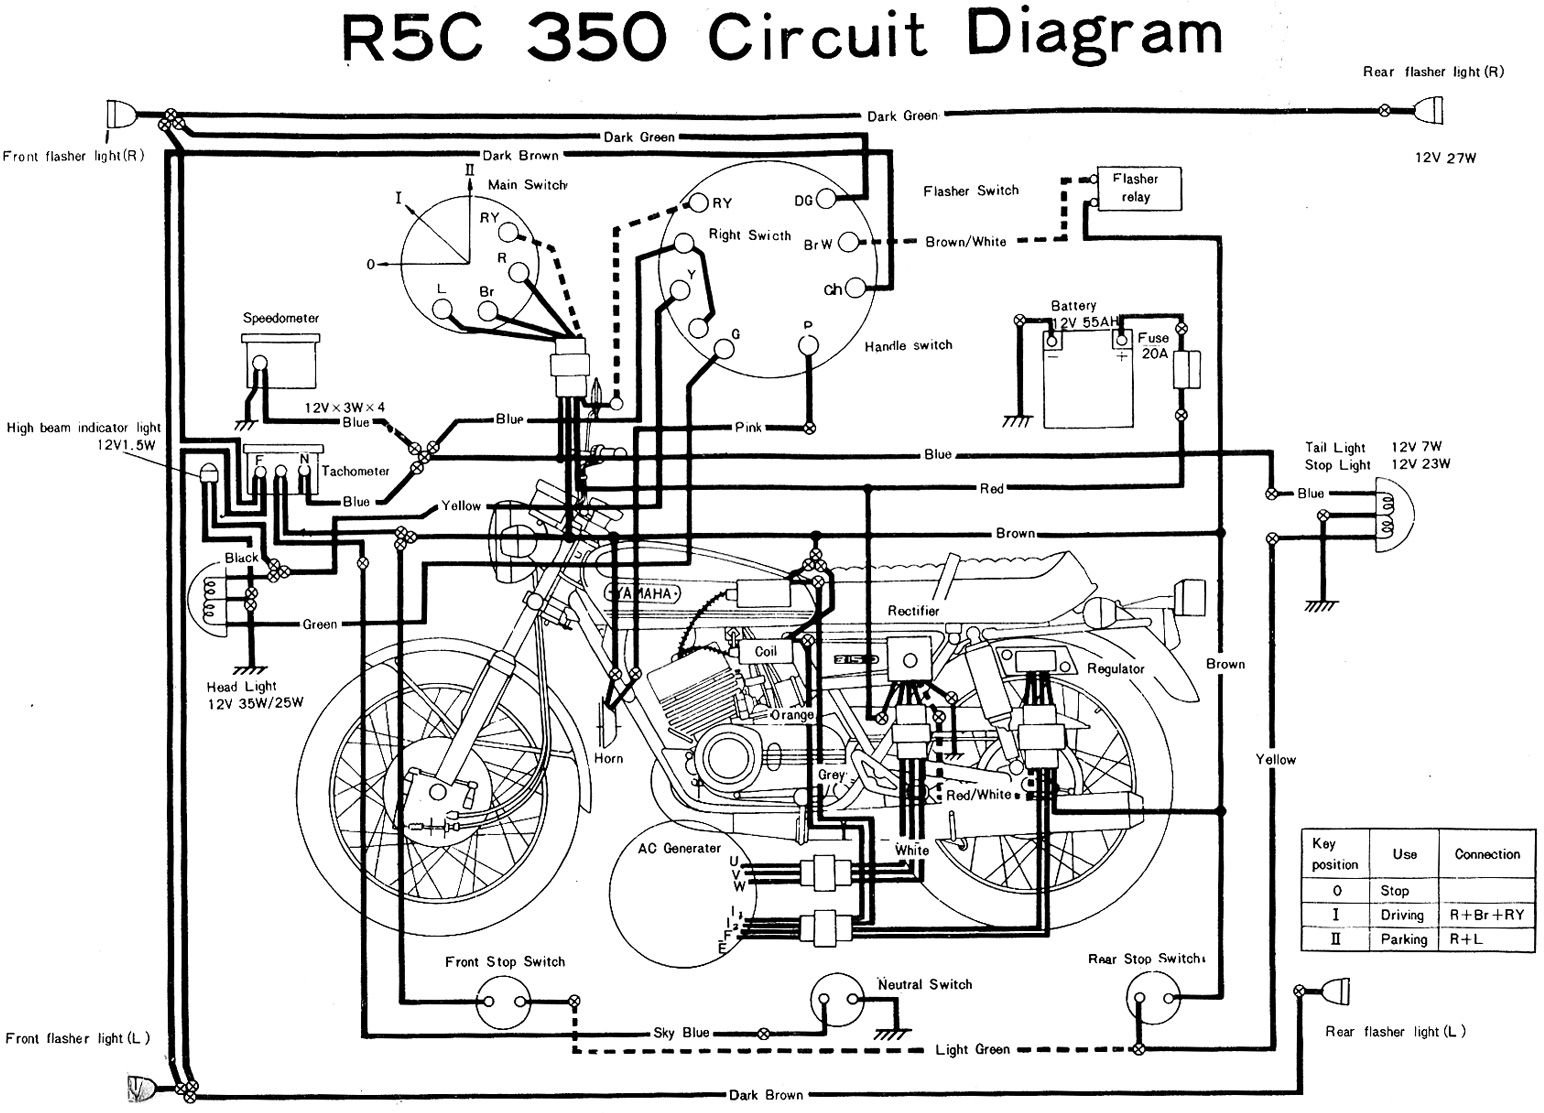 hight resolution of motorcycle wiring diagrams hight resolution of r5c 350